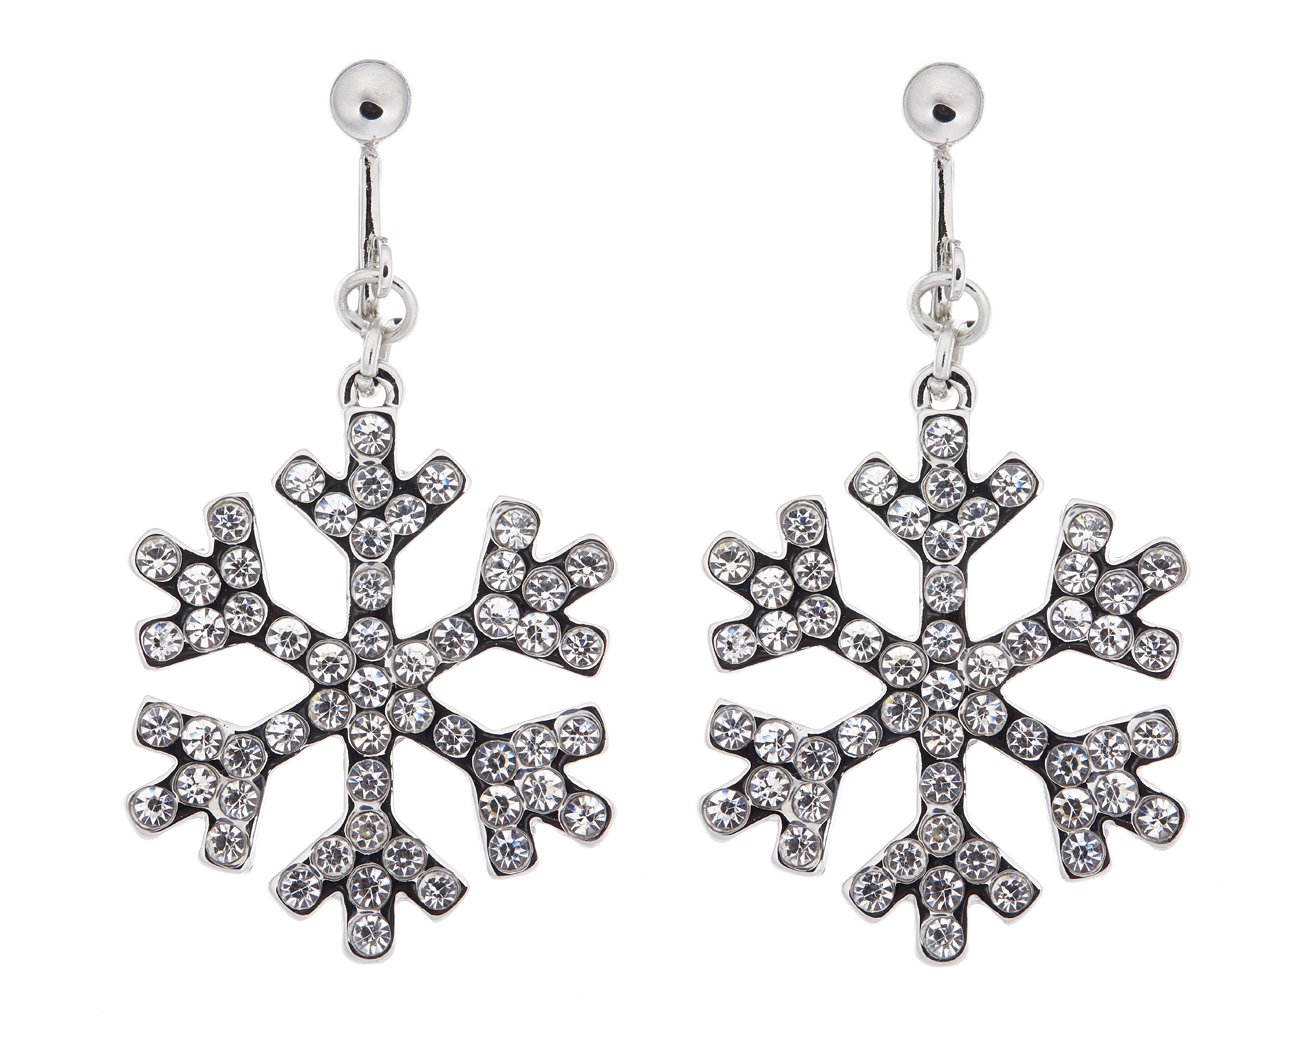 Clip On Earrings - Millie - silver snowflake earring with clear crystals